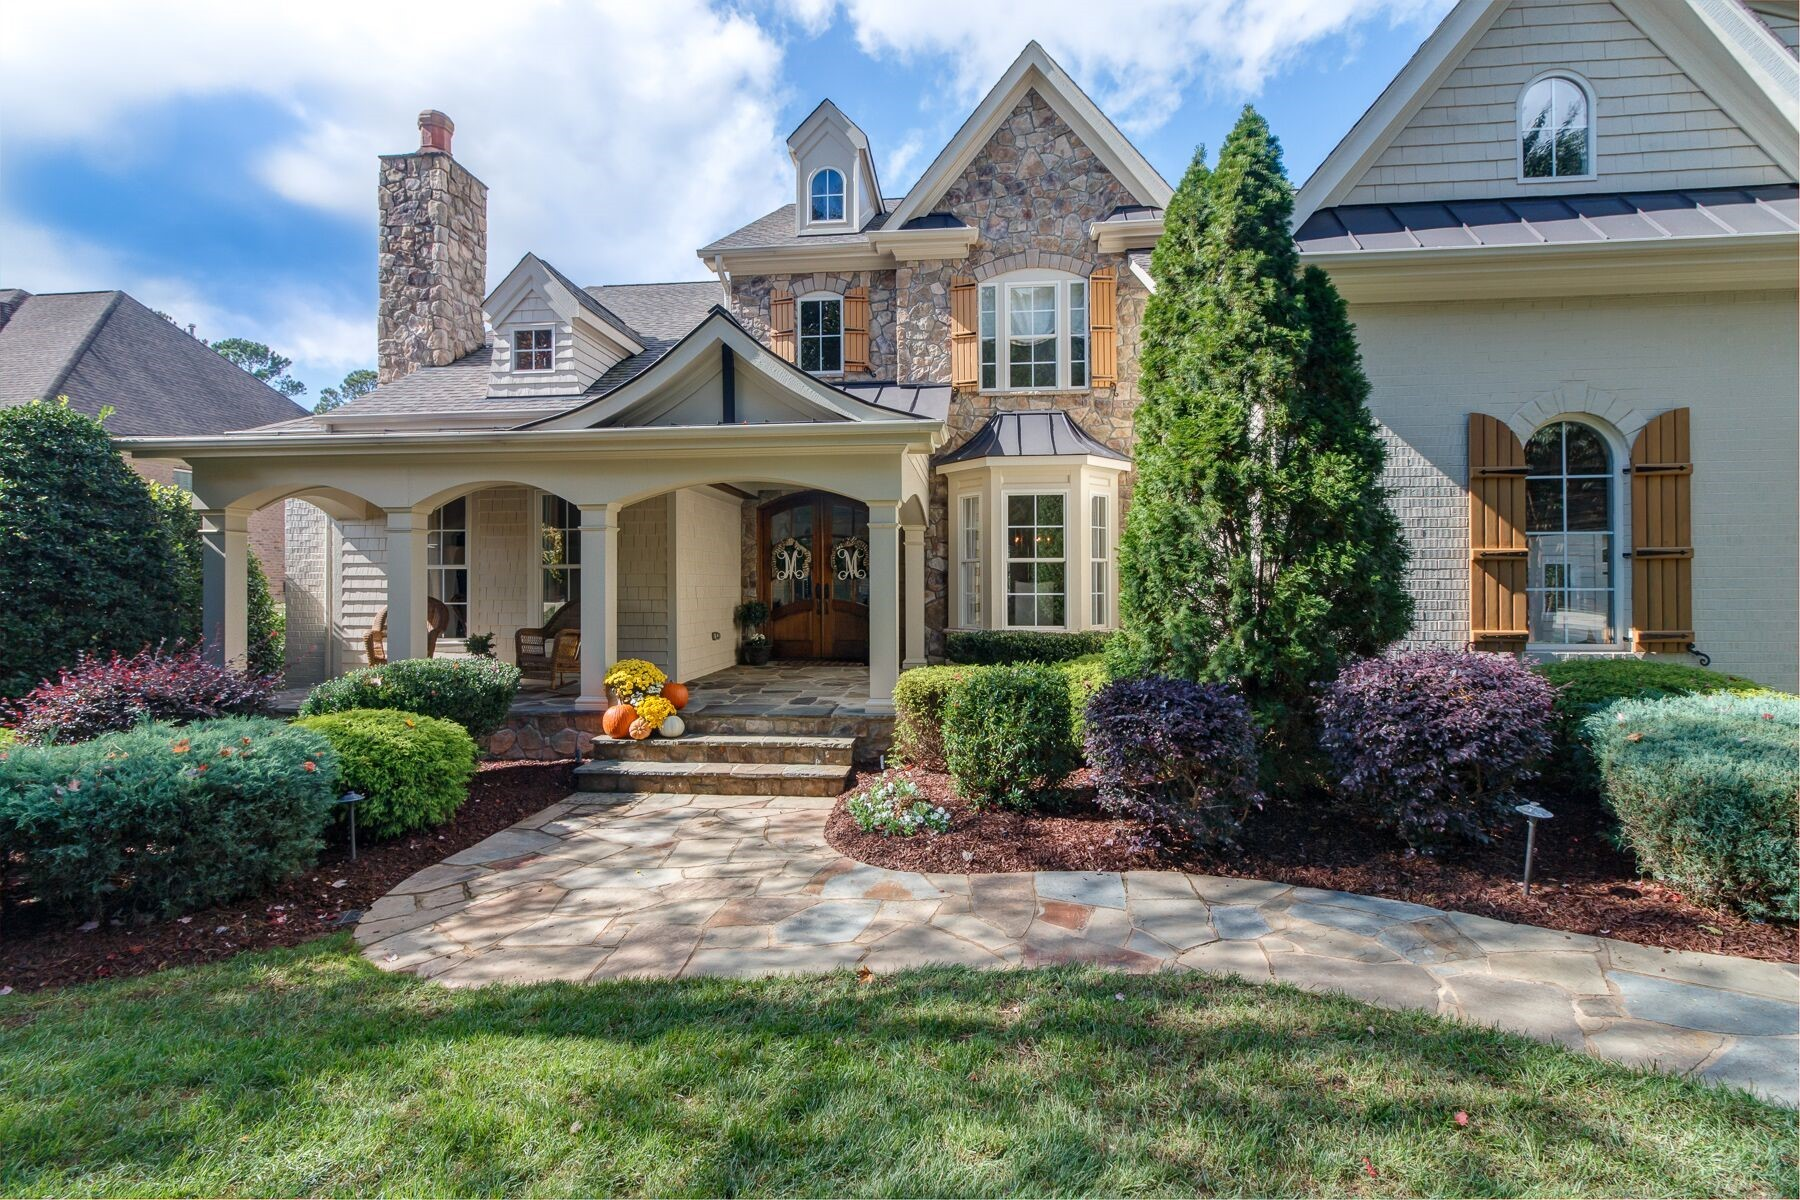 Single Family Home for Sale at Stunning 2007 Parade Home ~ Leesville Crest 6625 Rest Haven Drive Raleigh, North Carolina 27612 United StatesIn/Around: Cary, Chapel Hill, Durham